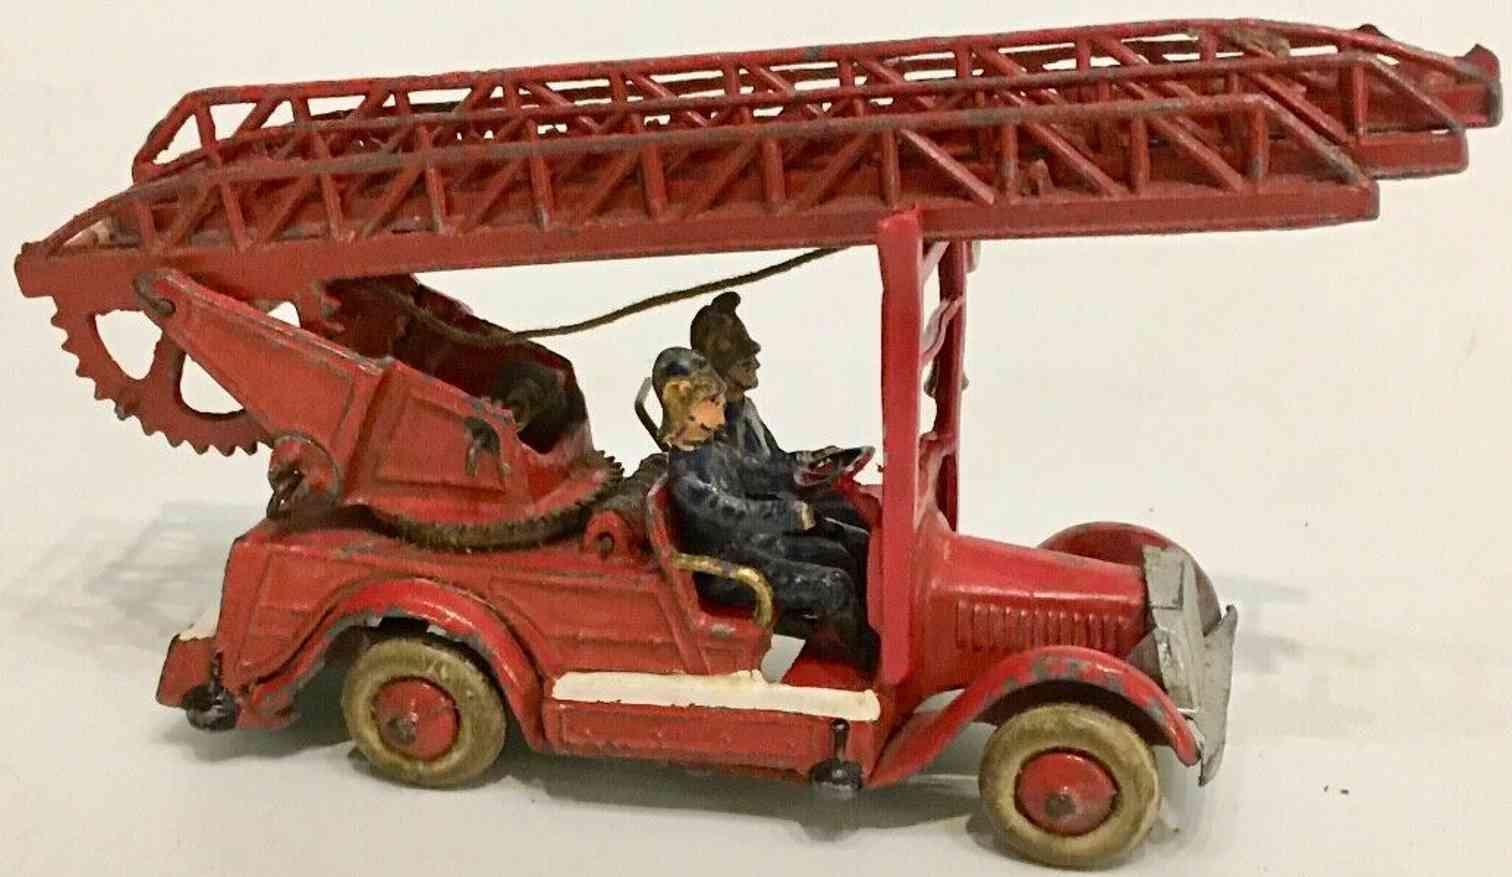 taylor & barrett toy die-cast turntable fire ladder engine with two fire fighters